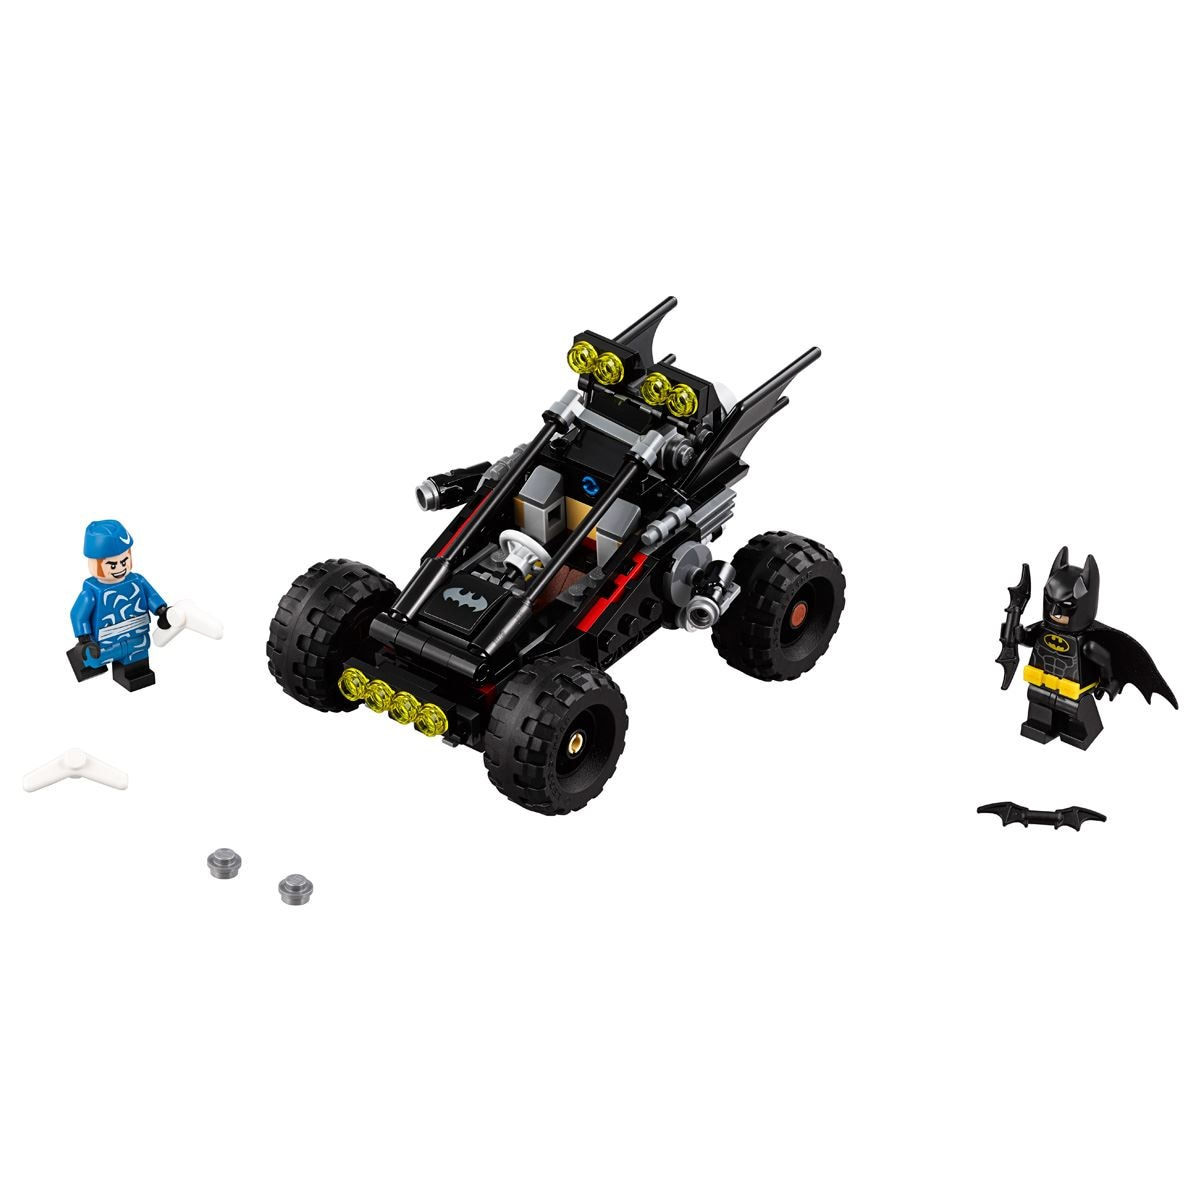 The Lego Batman Movie Batibuggy